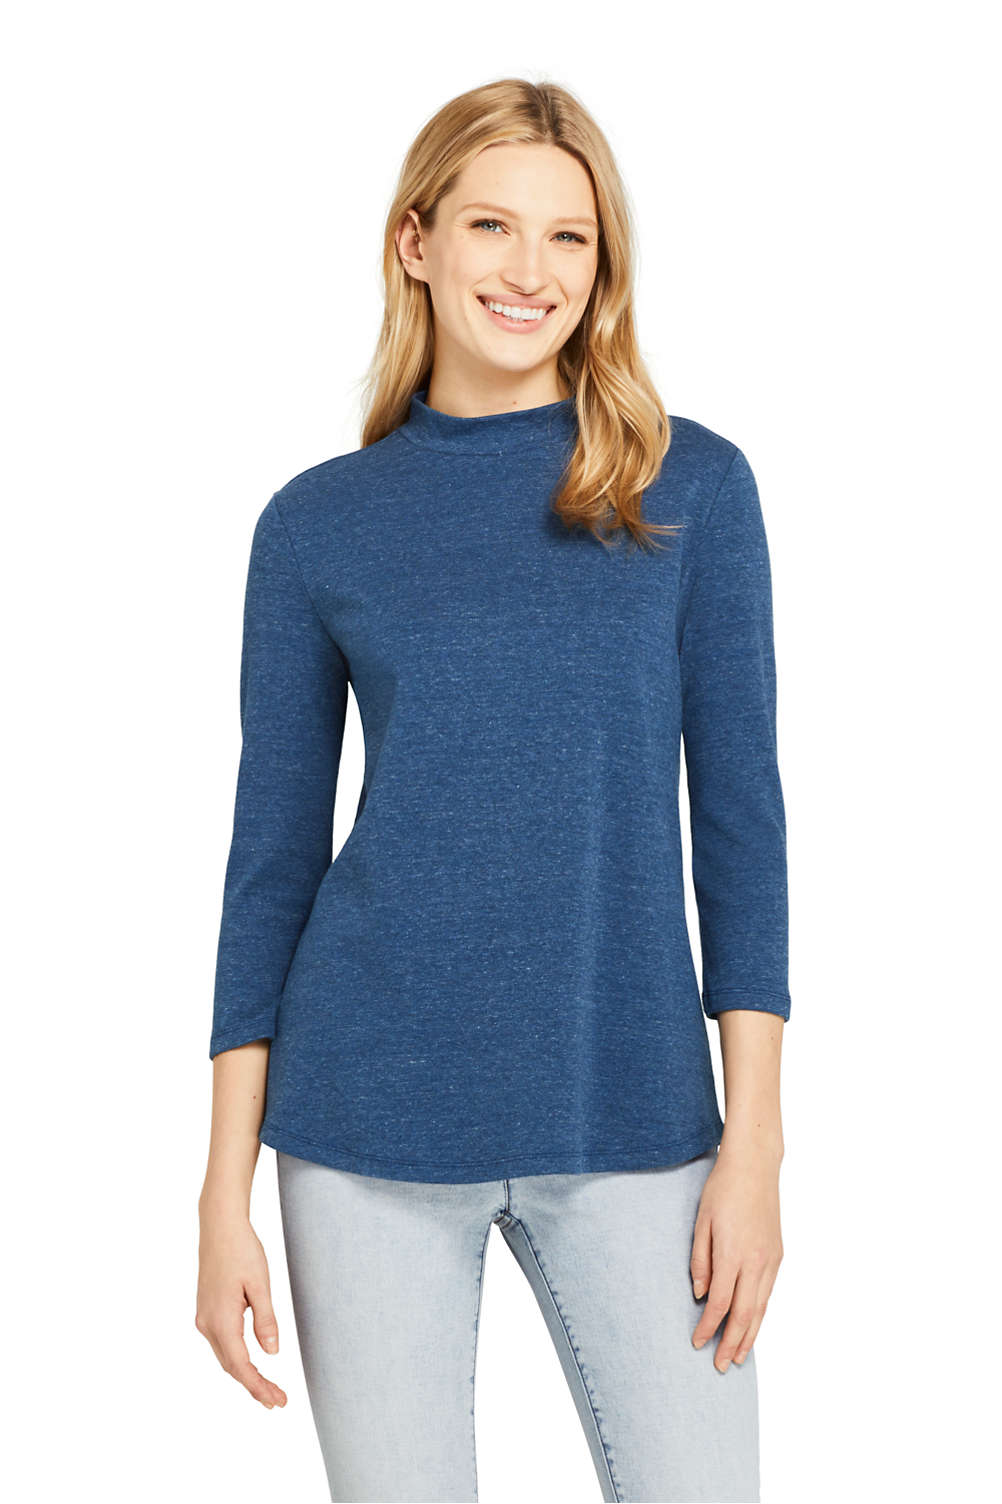 1766682dc478 Women's 3/4 Sleeve Mock Neck Tunic from Lands' End